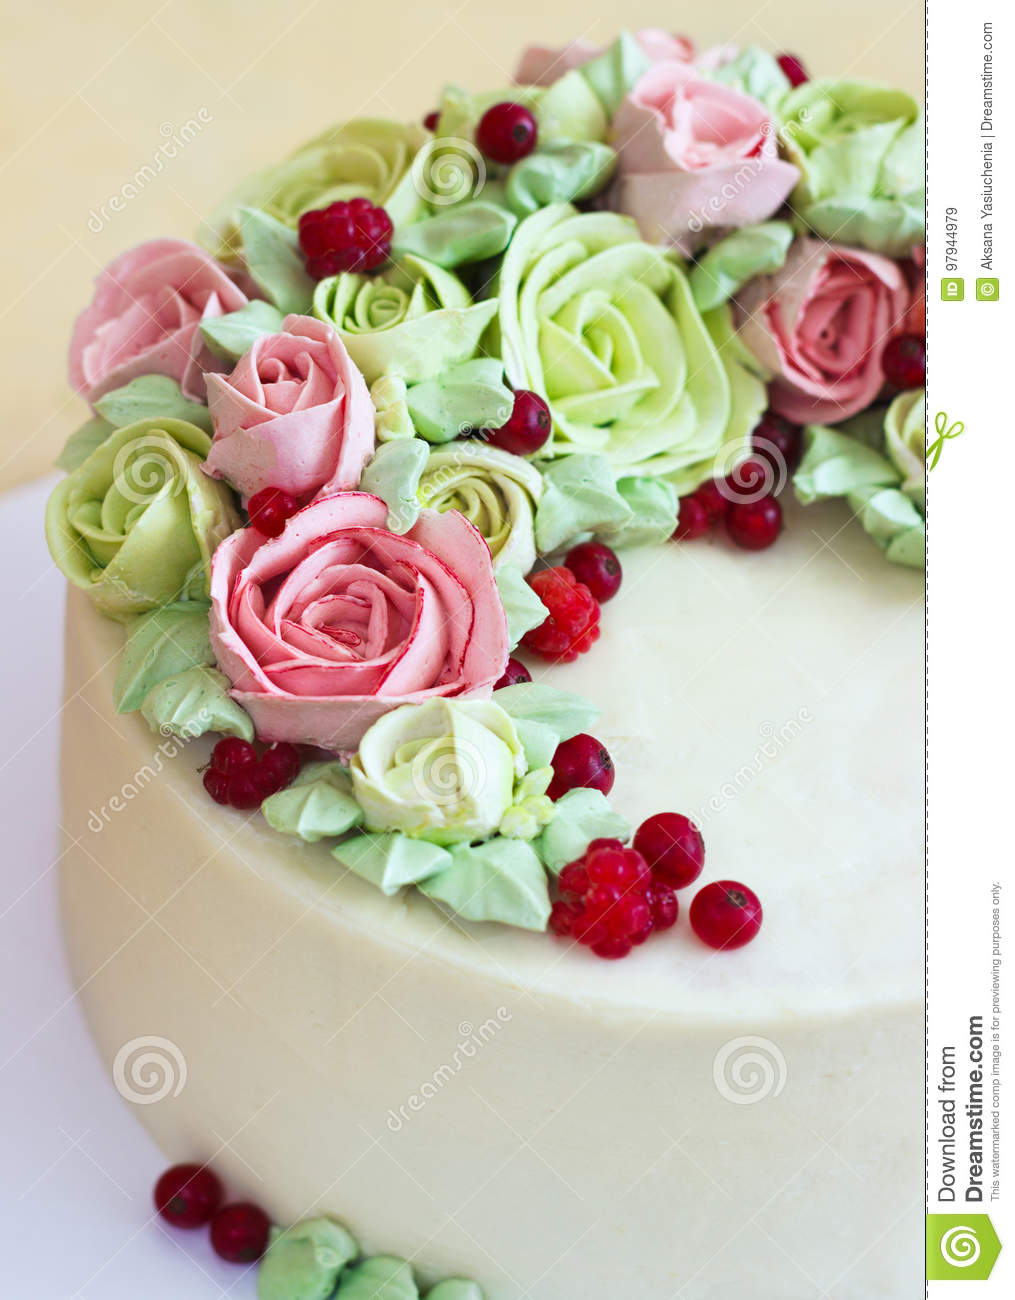 Birthday Cake With Flowers Rose On Light Background Stock Image